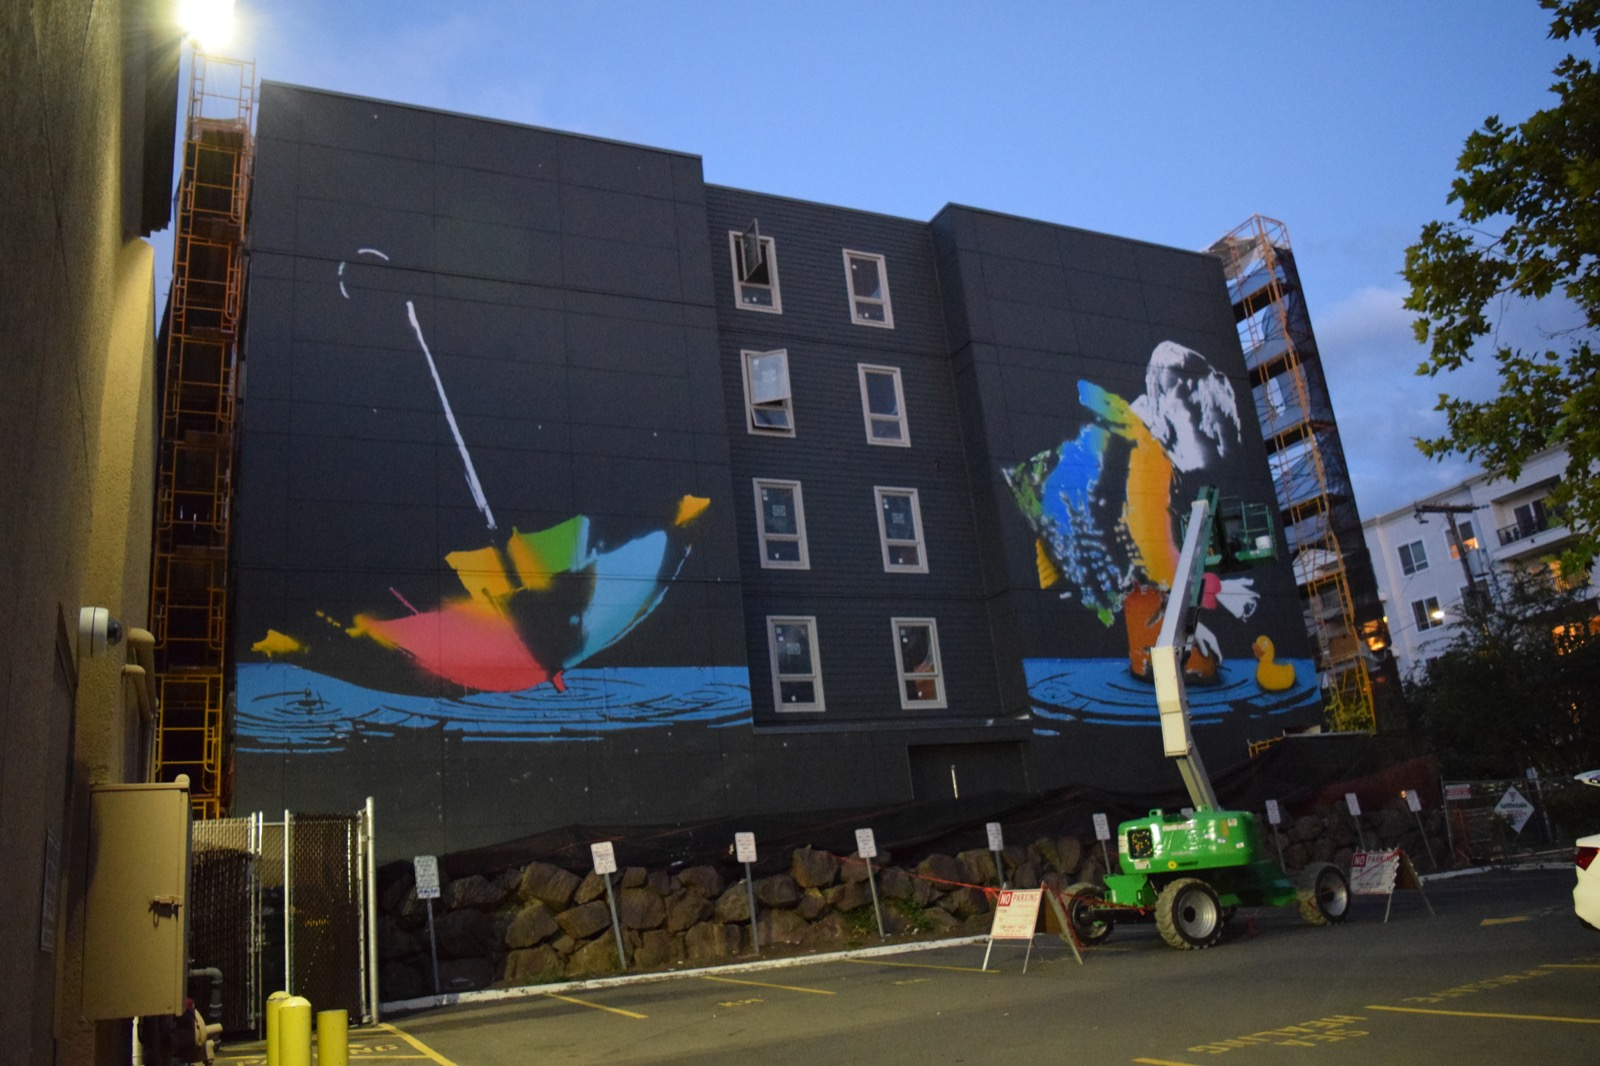 Bumblebee creates a large mural in seattle usa streetartnews streetartnews for Concerts at the mural seattle